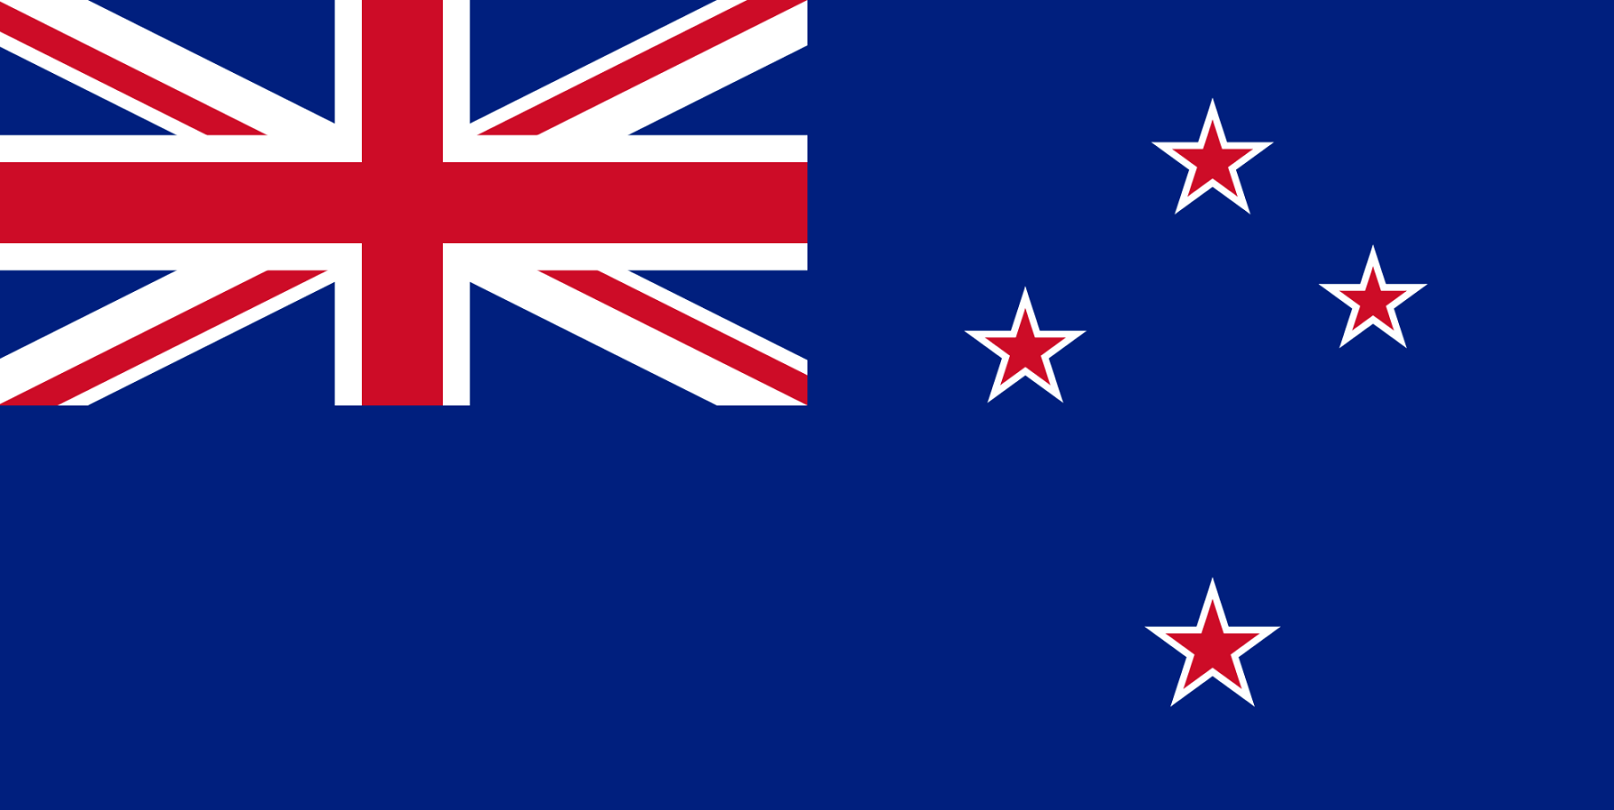 new-zealand-flg.png